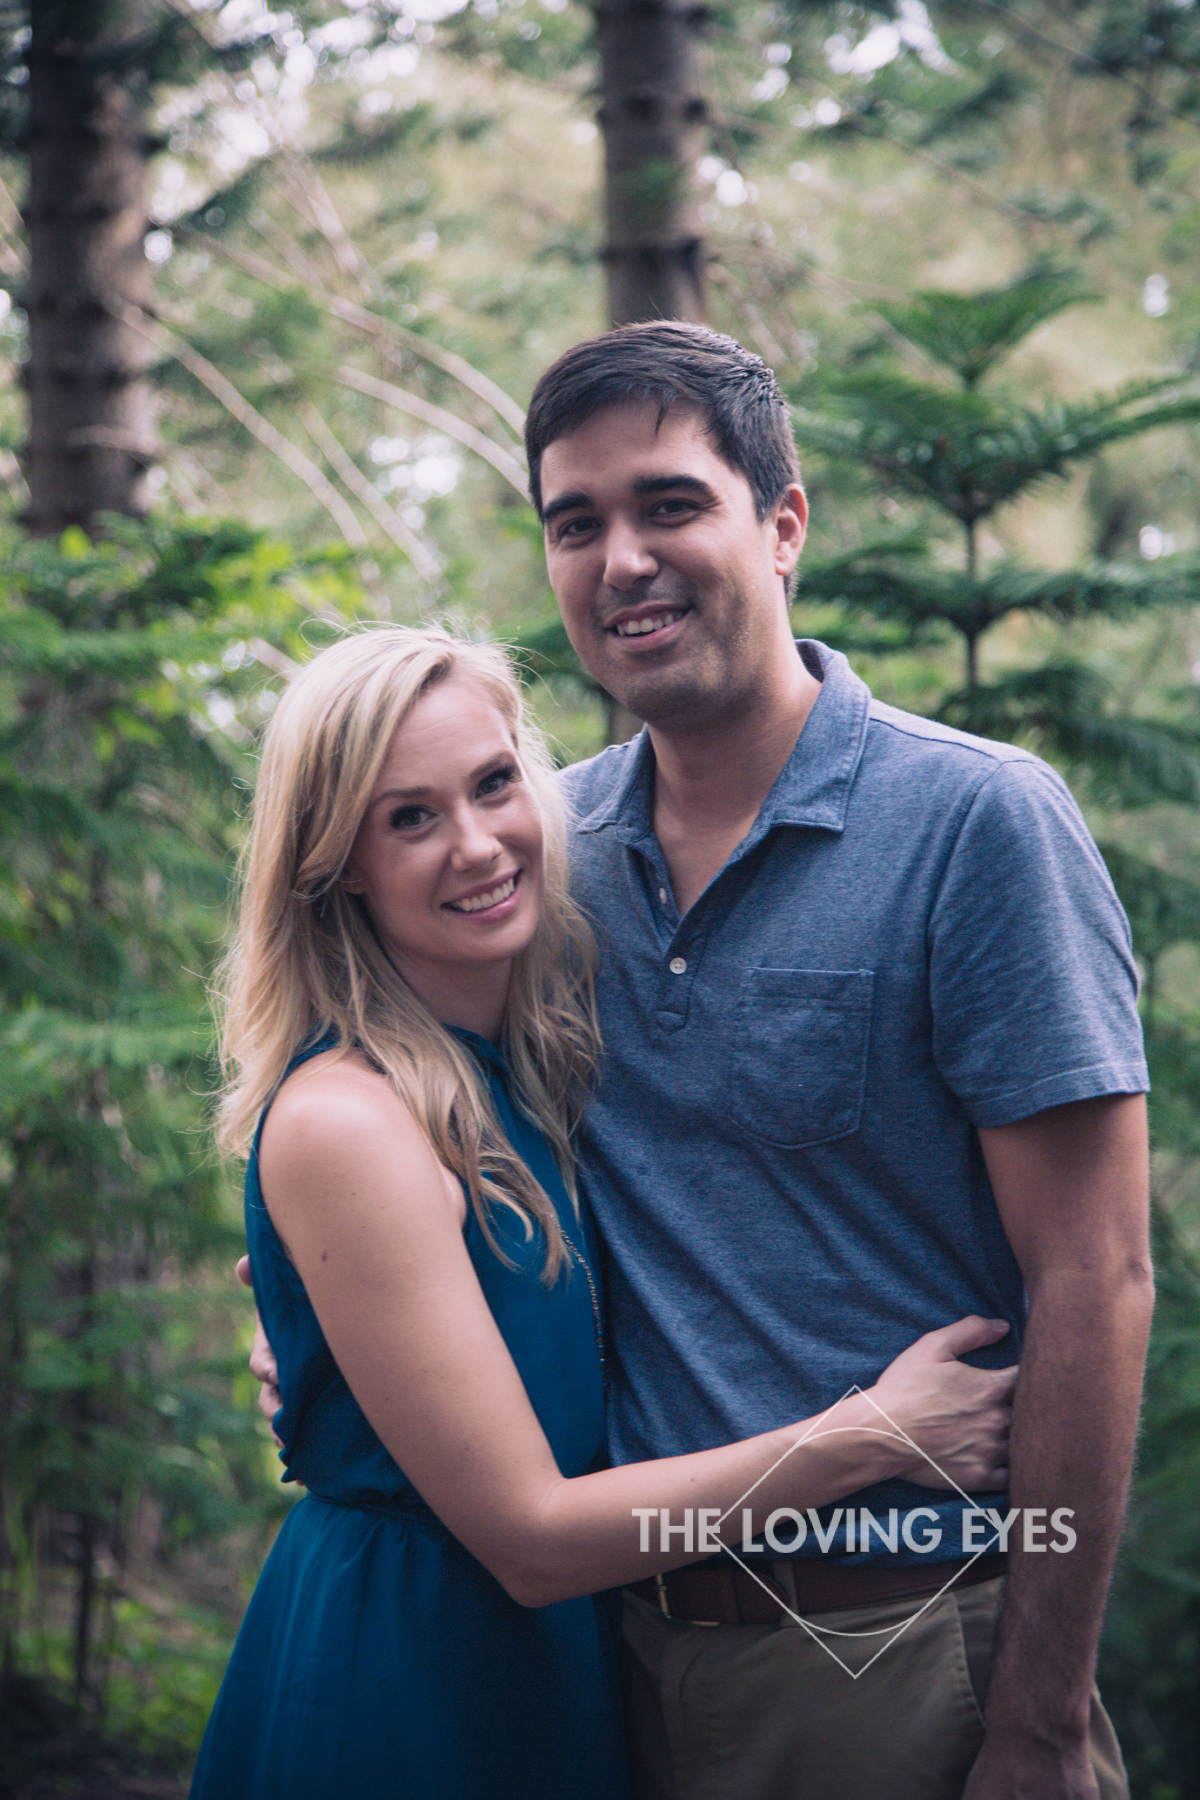 Couple Portrait in the Woods in Hawaii